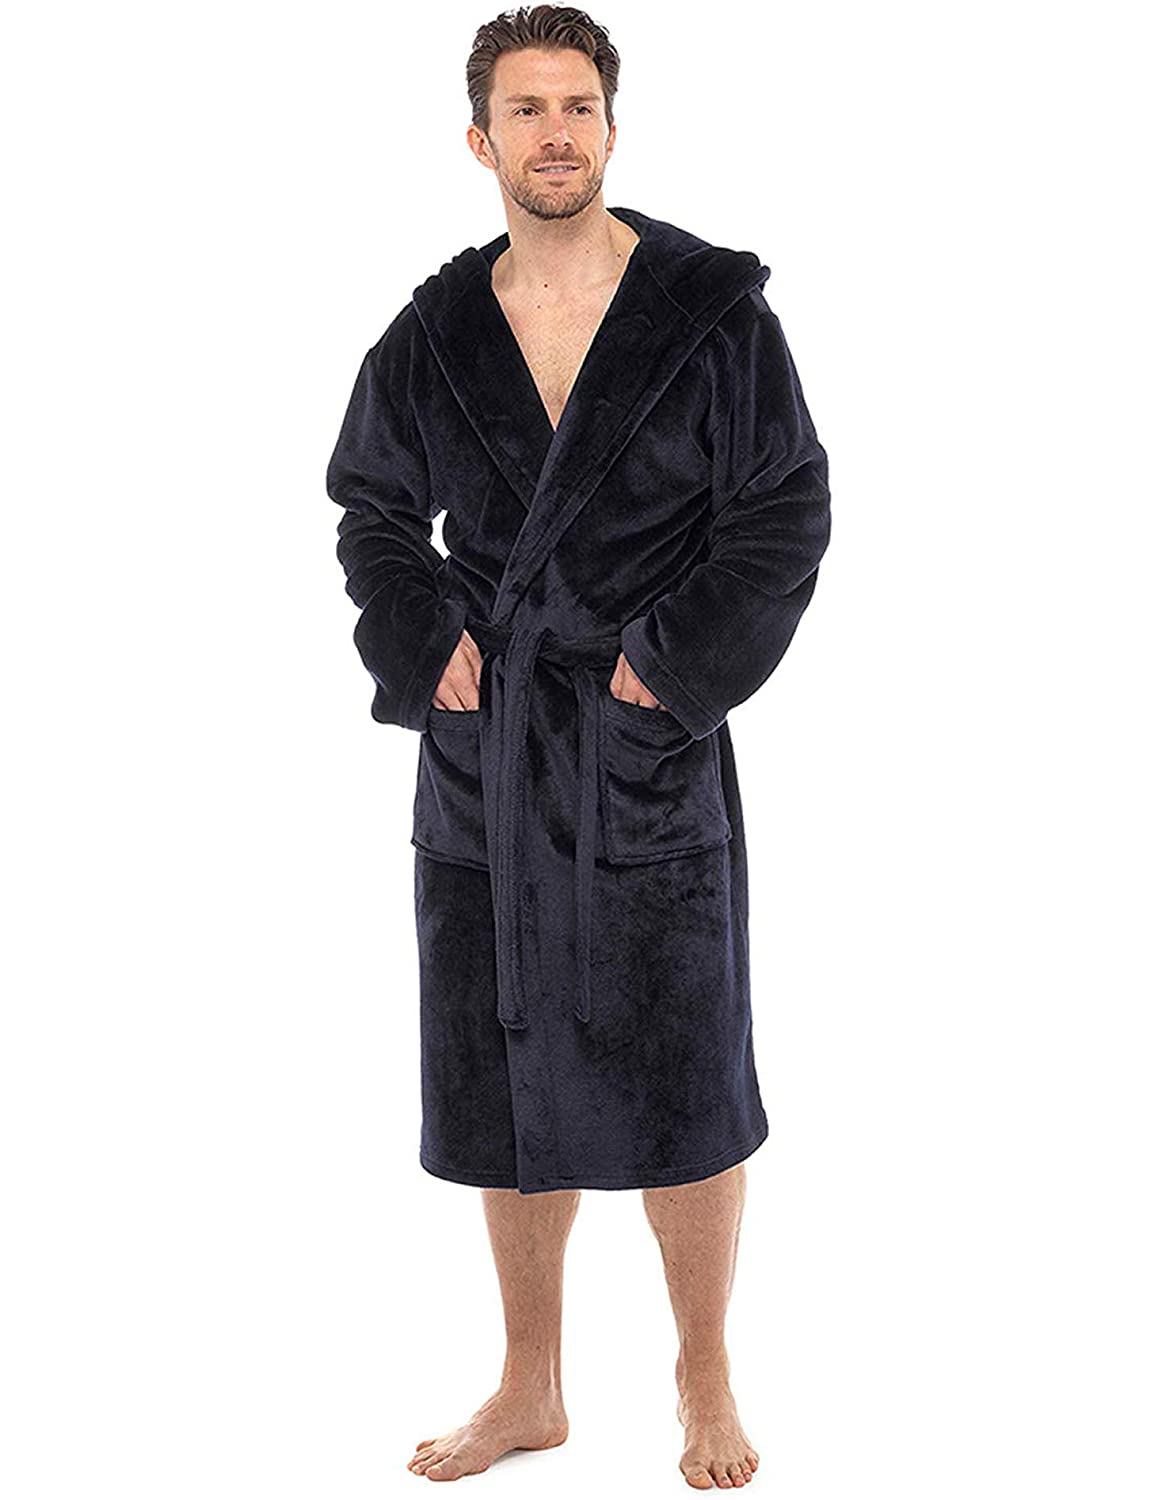 Mens Dressing Gown Luxury Super Soft Mens Fleece Robe with Hood Gowns Bathrobe Warm and Cozy…